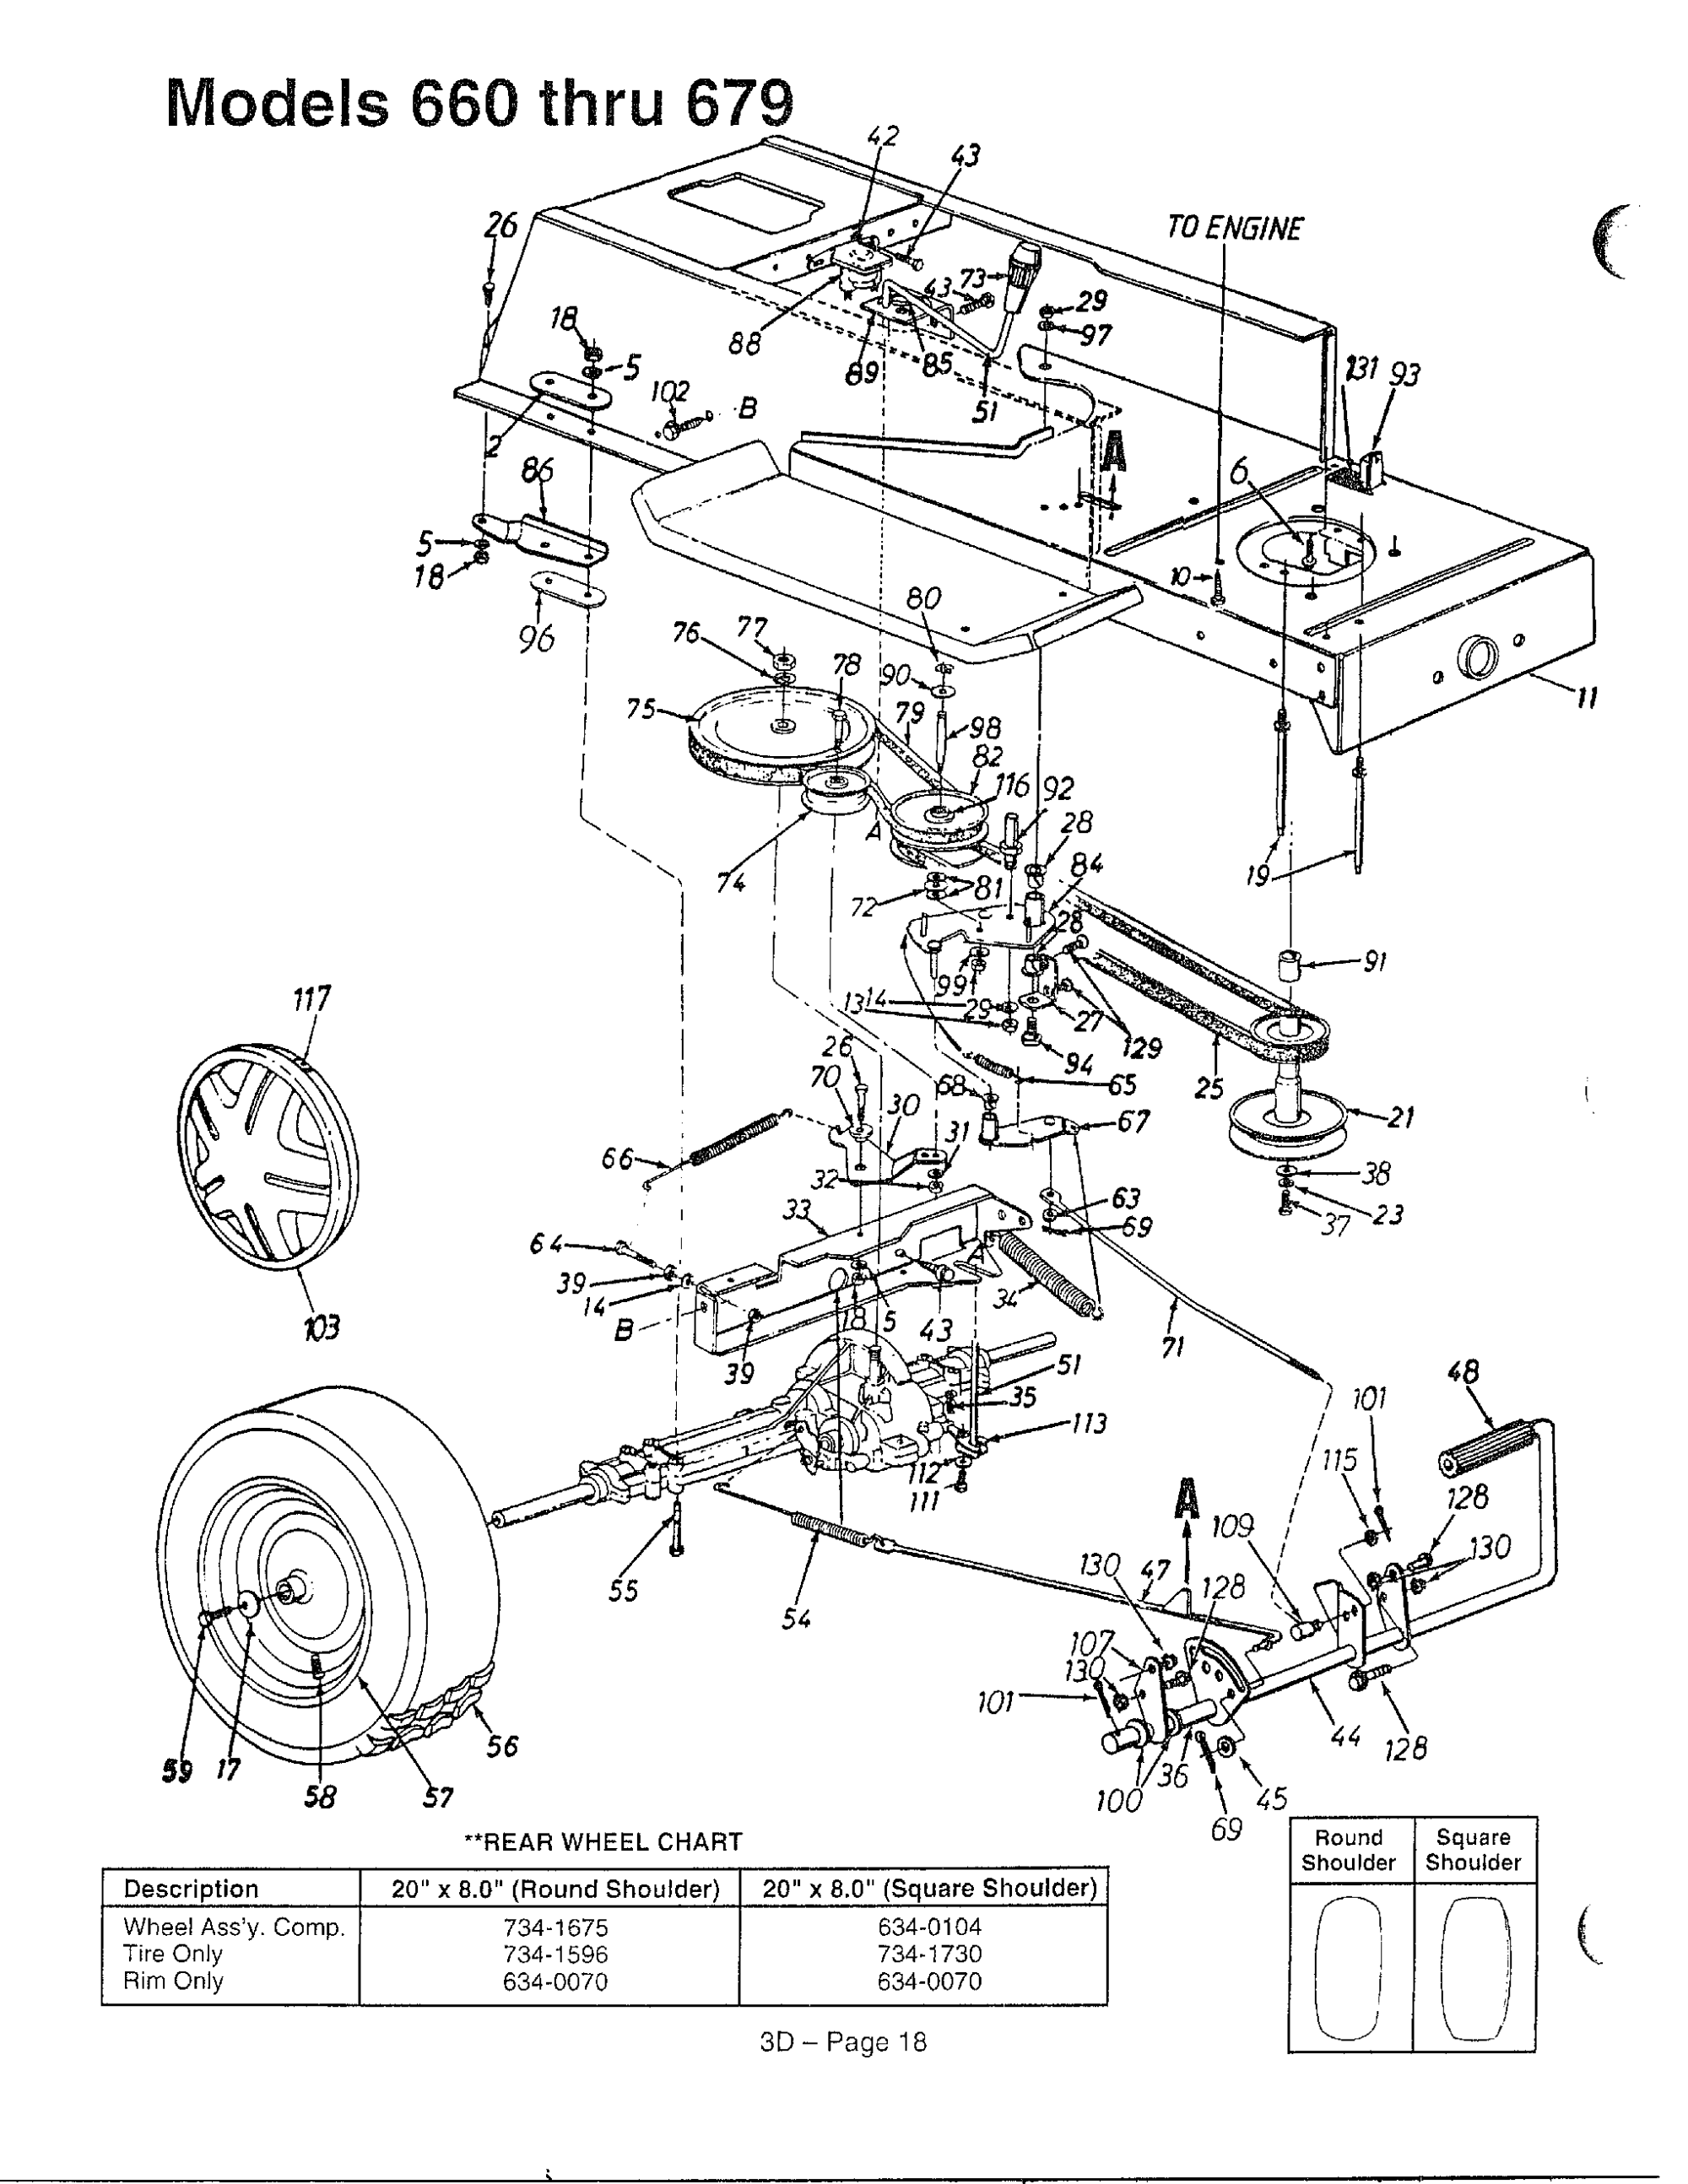 hight resolution of mtd 136m670g788 models 660 679 page 3 diagram